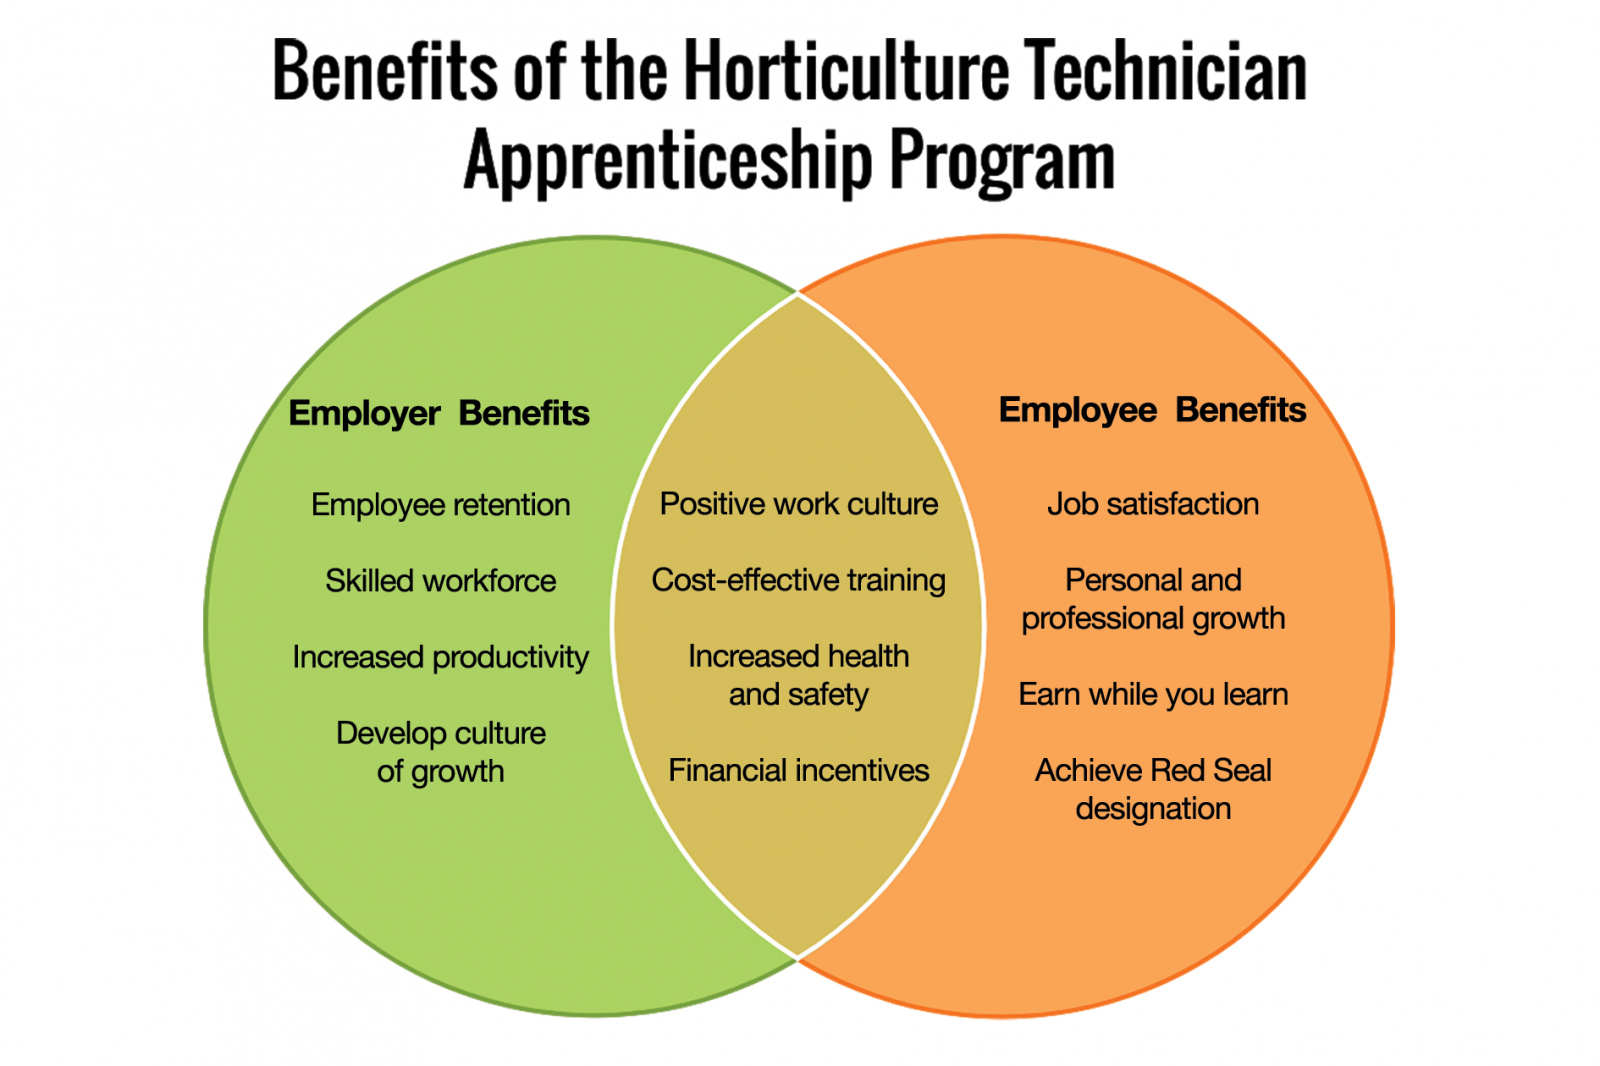 Inspire and invest in your employees through Apprenticeship